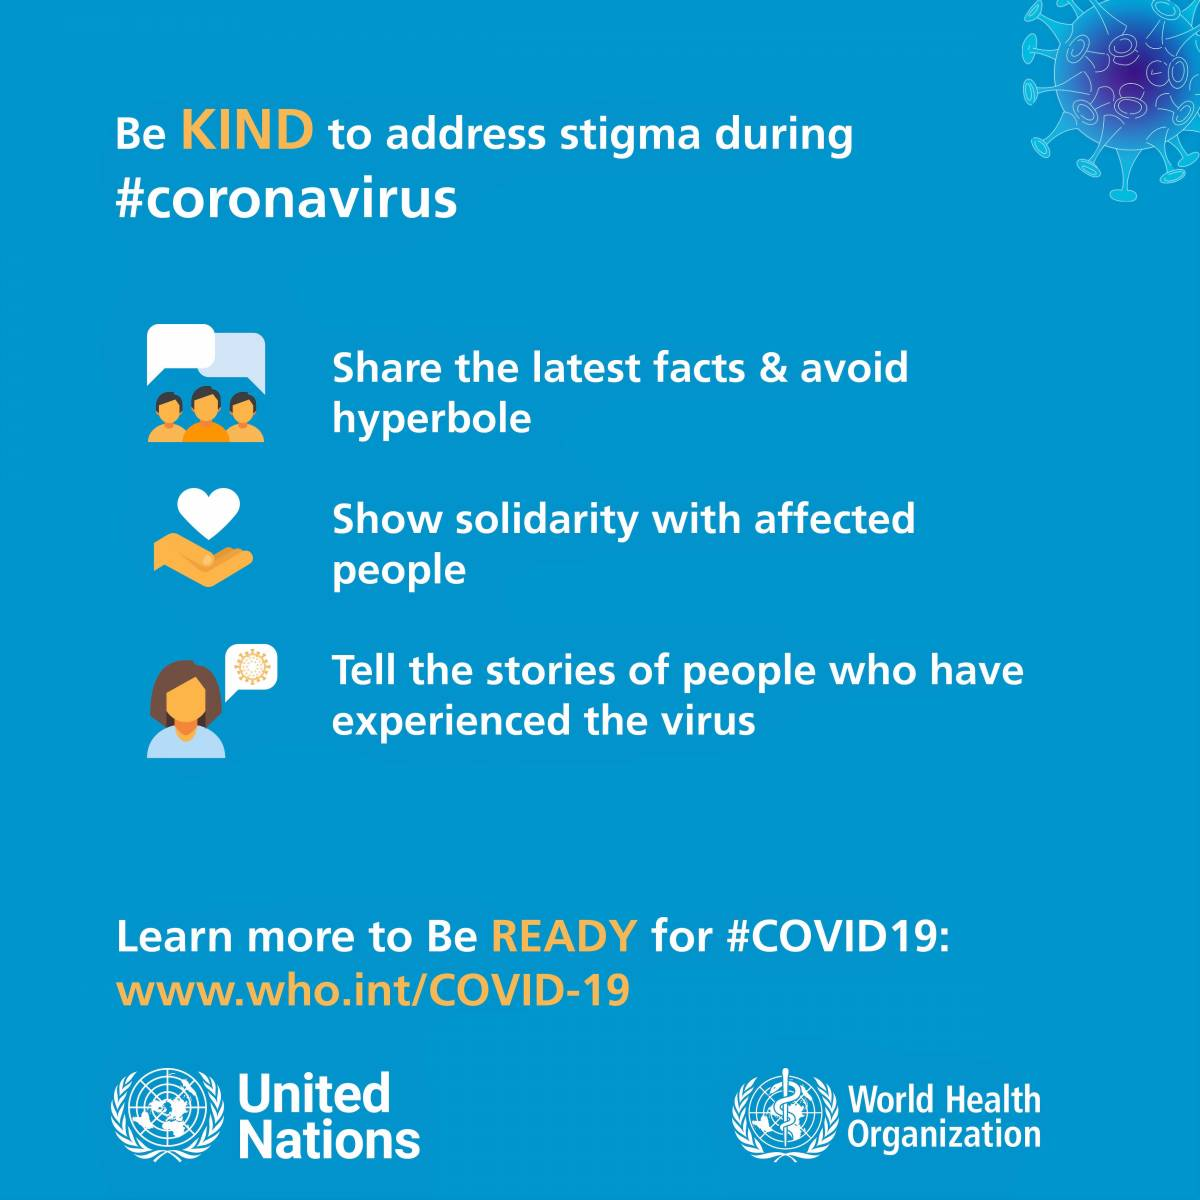 BE READY FOR COVID-19 STAY HEALTHY, TRAVEL RESPONSIBLY